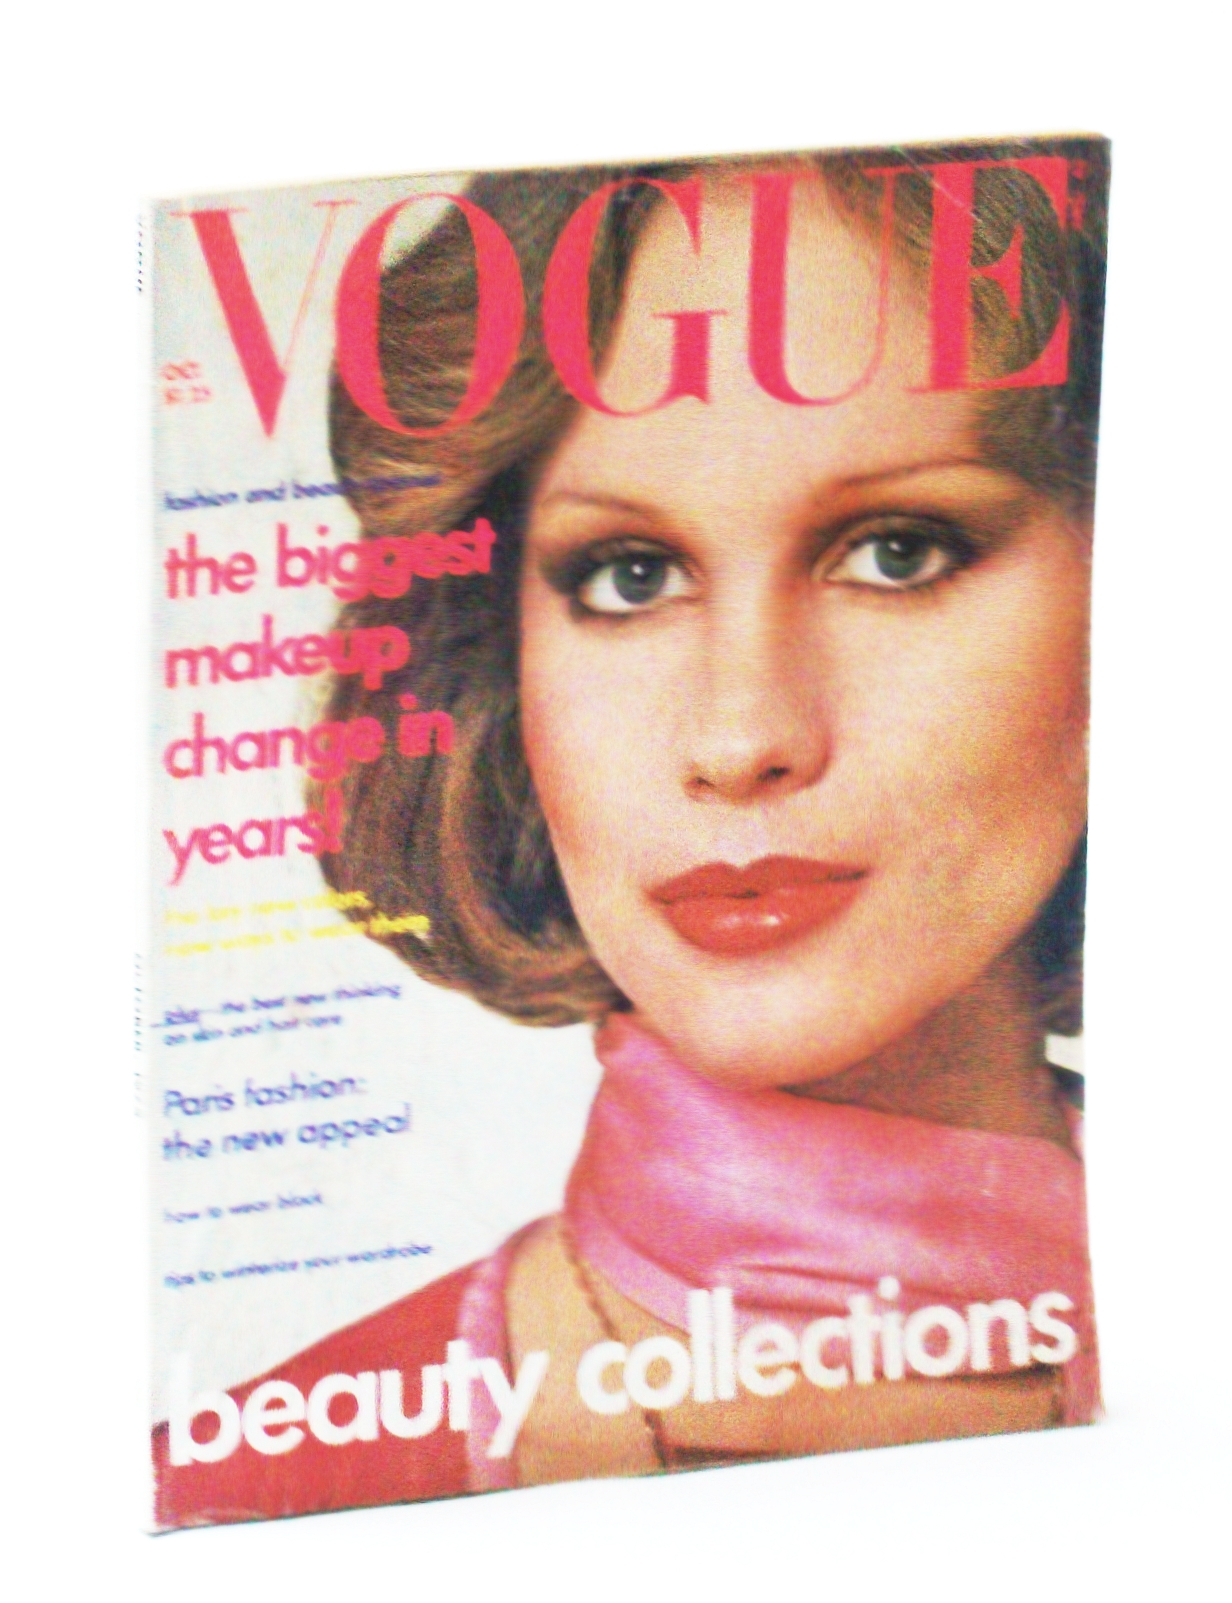 Image for Vogue (American) Magazine, October (Oct.) 15, 1975 - Beauty Collections